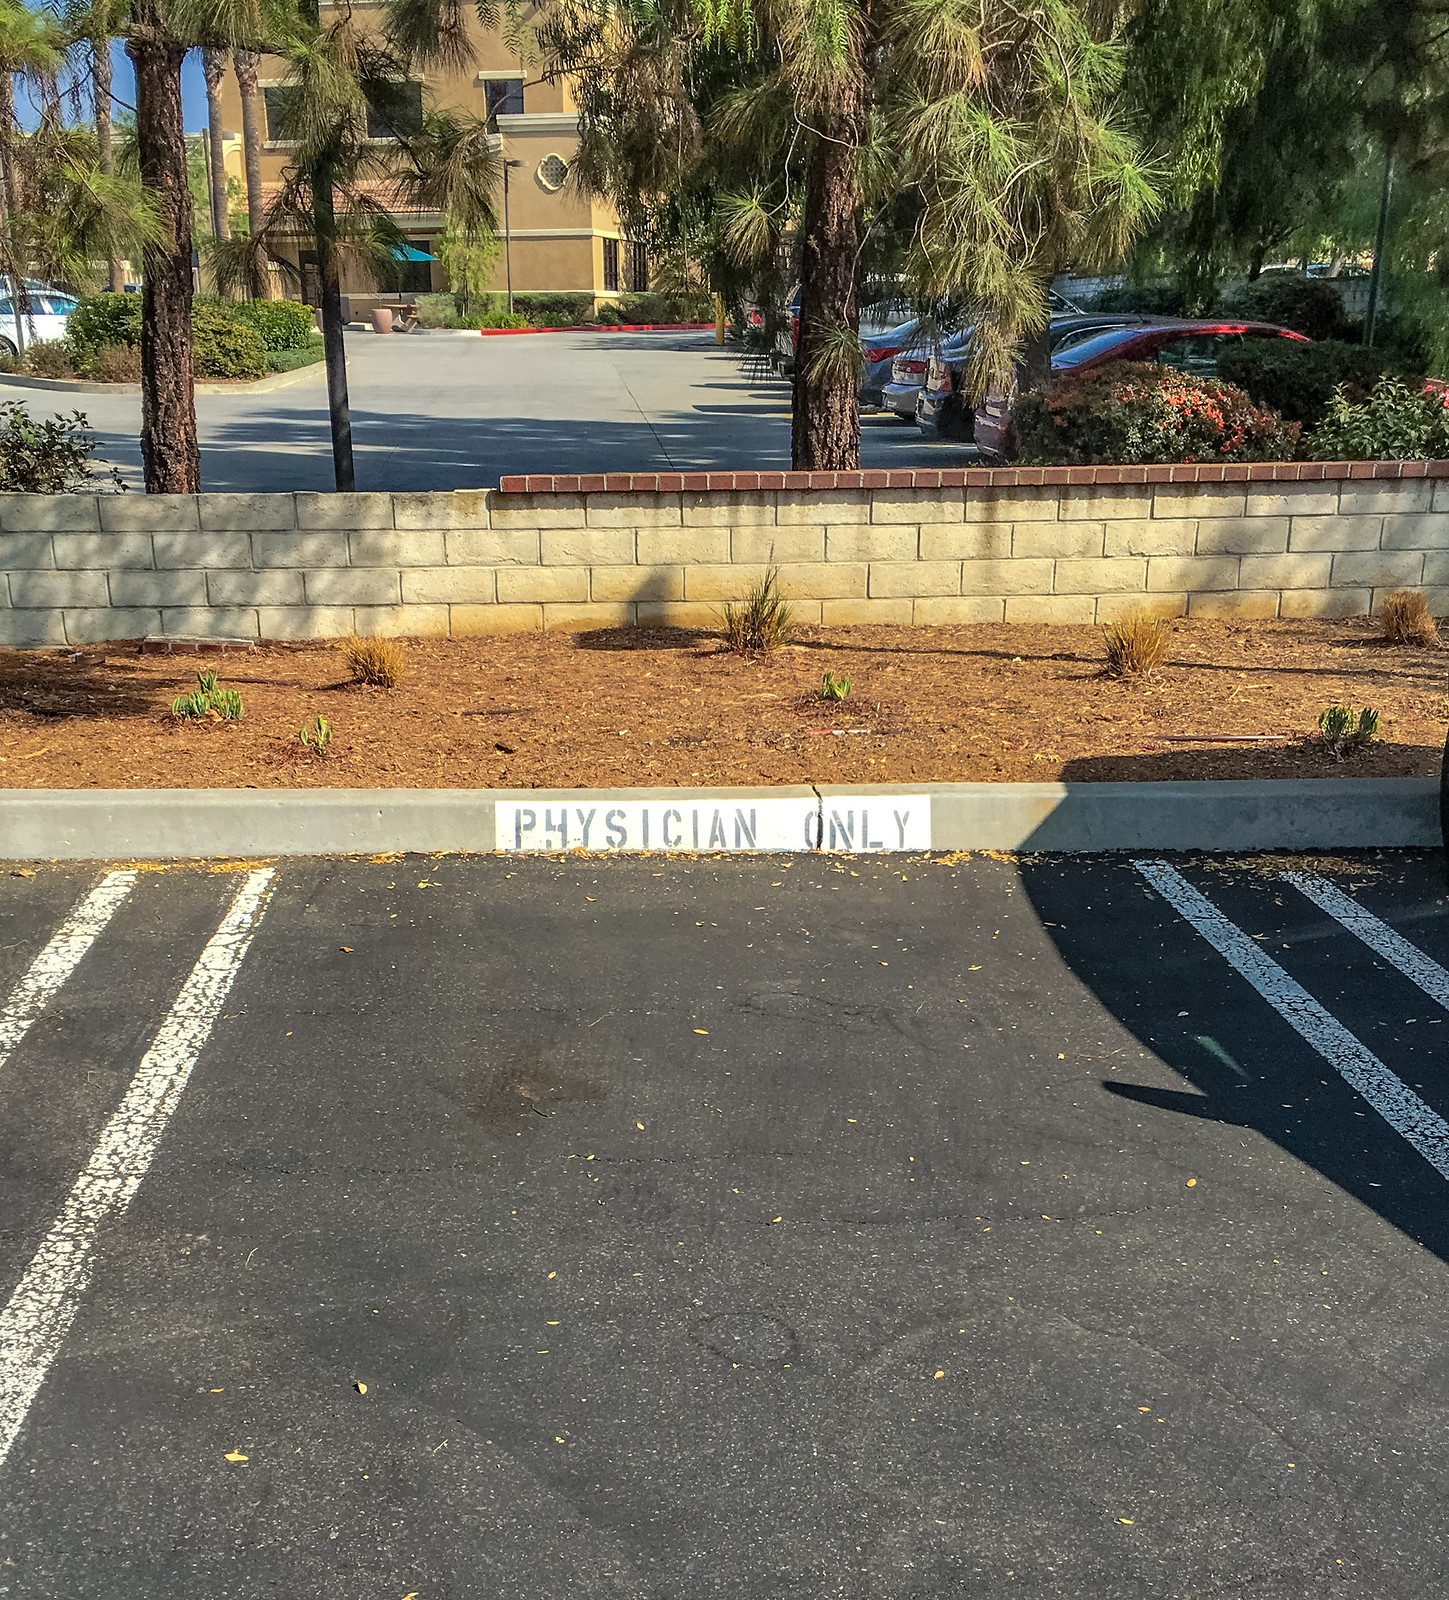 Physician parking spot Kaiser Permanente San Dimas California 3235